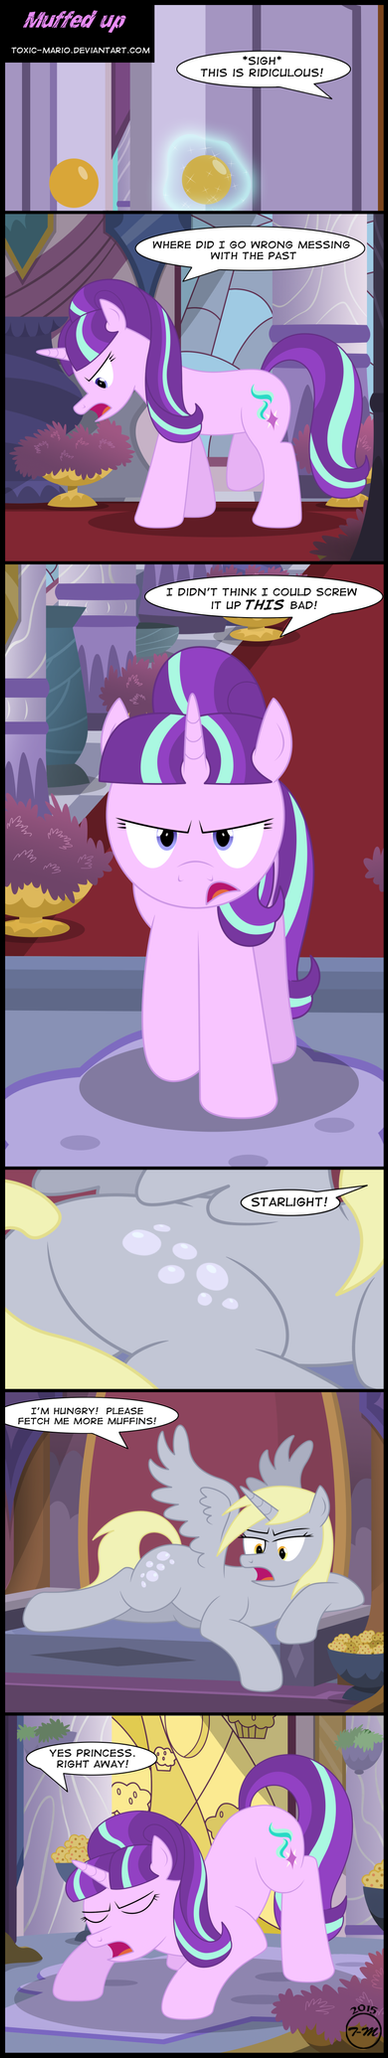 Muffed Up by Toxic-Mario